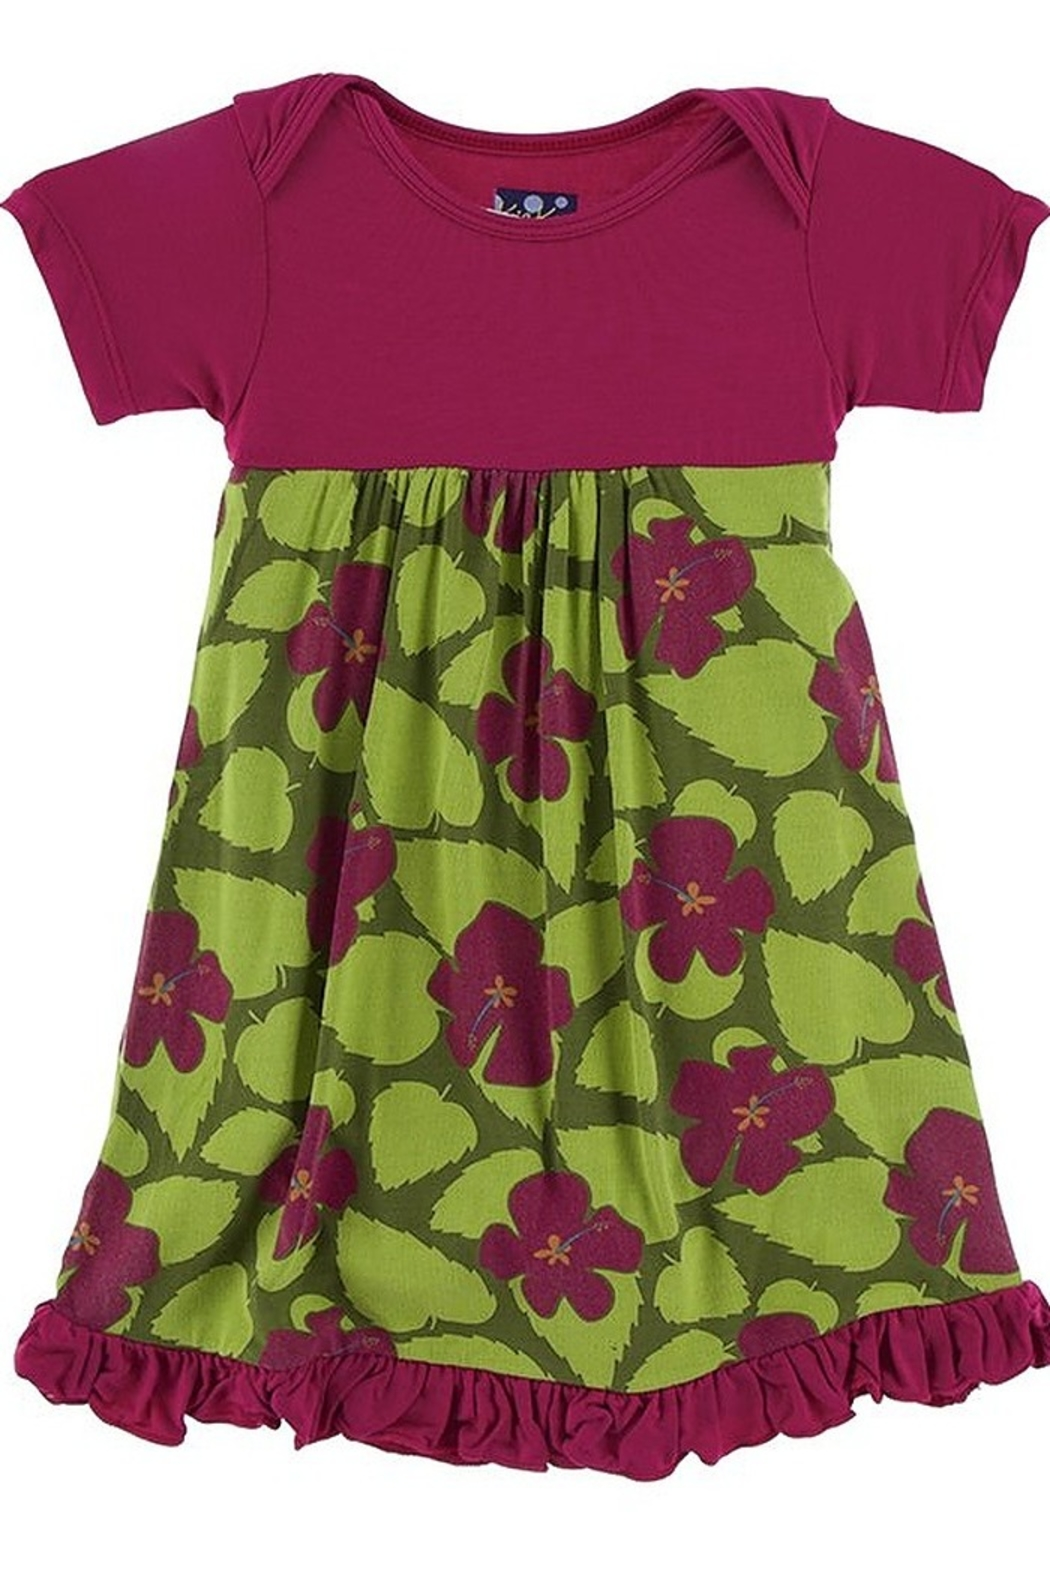 Kickee Pants Short Sleeve One Piece Dress Romper in Pesto Hibiscus - Front Cropped Image